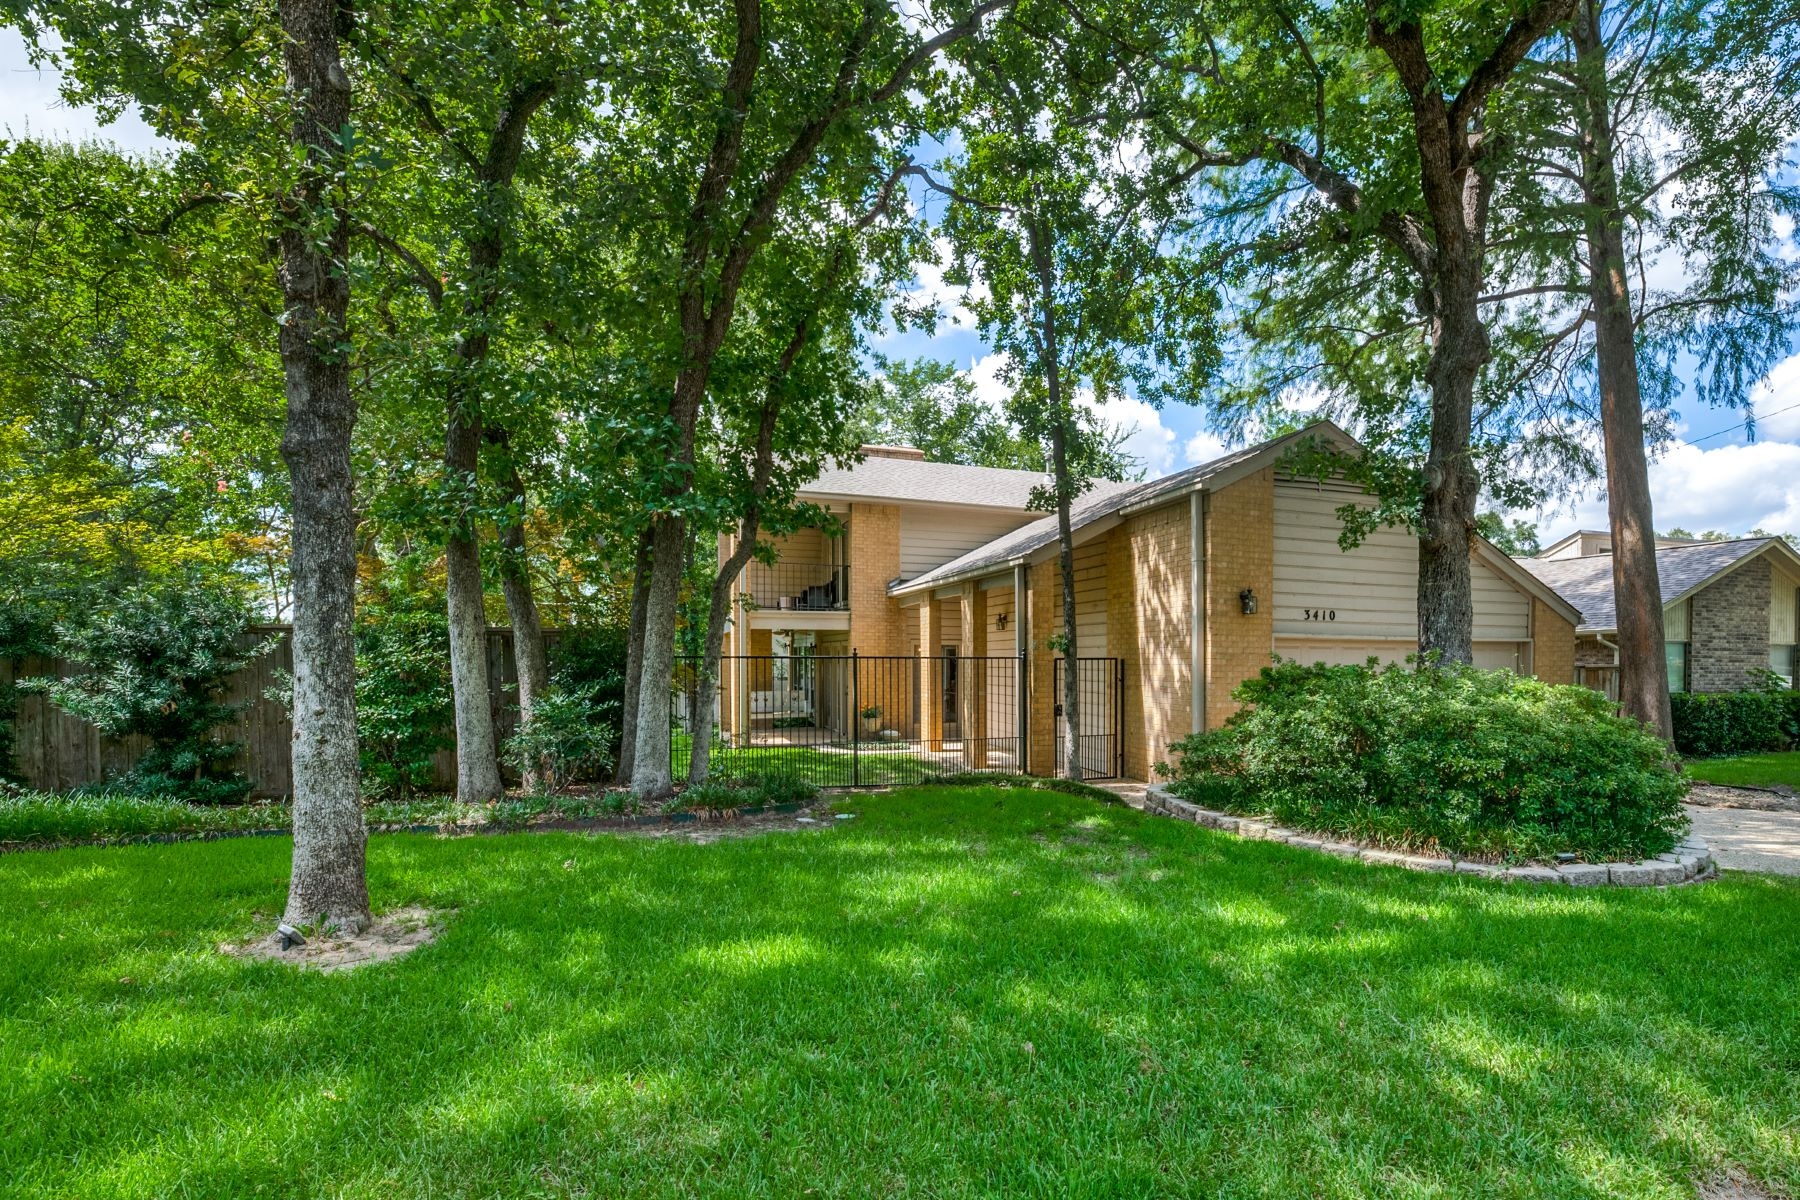 Single Family Homes for Sale at Contemporary Remodel Close to Lake Arlington 3410 Walden Trail Arlington, Texas 76016 United States